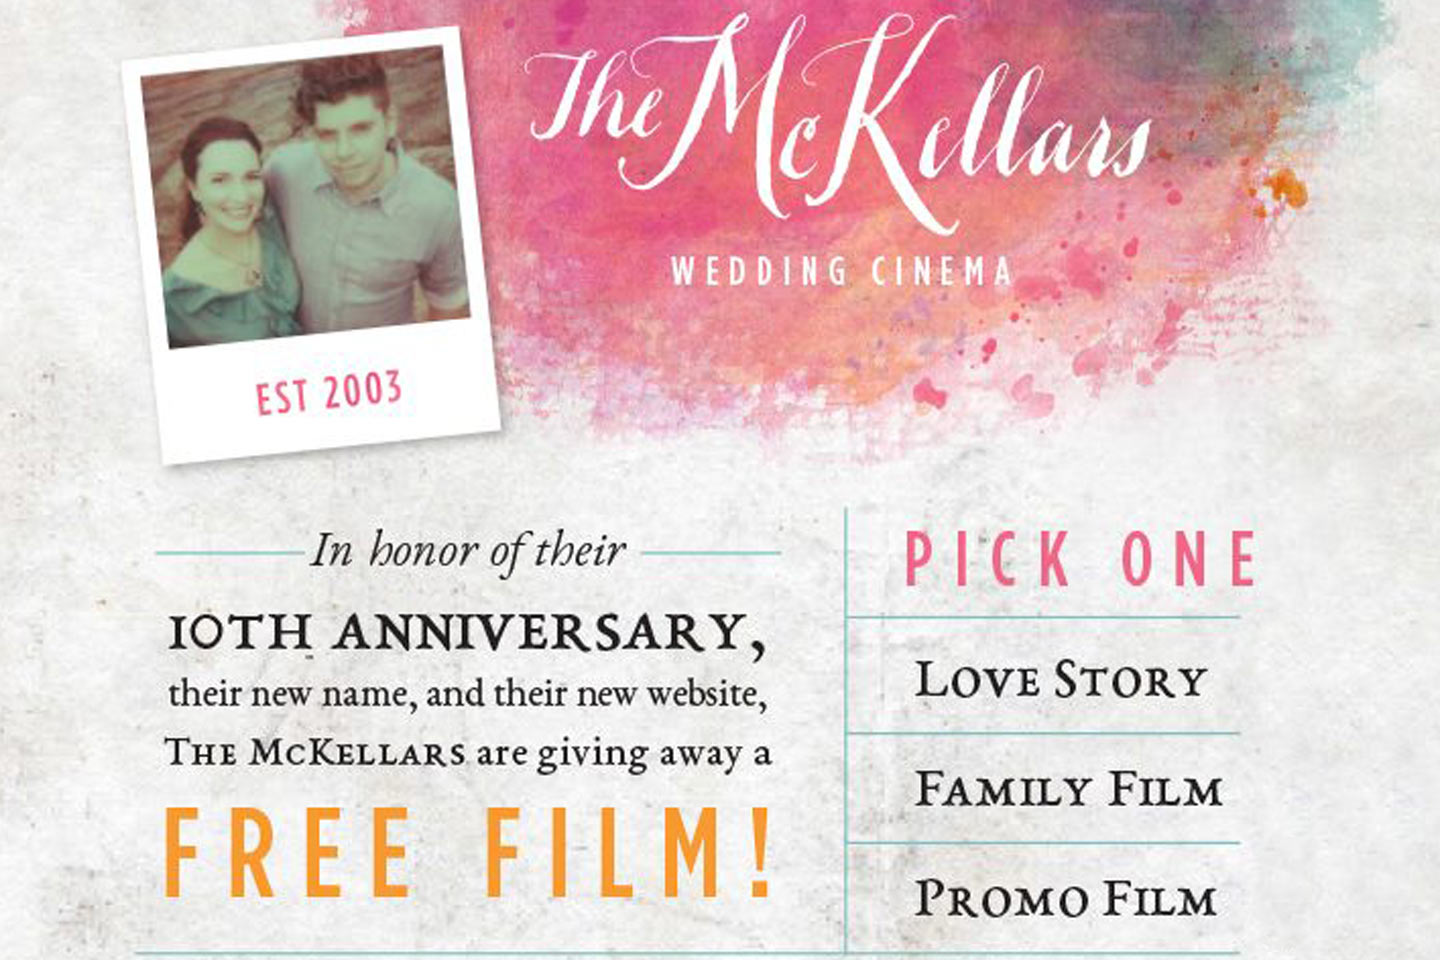 The McKellars Are Giving Stuff Away!!!